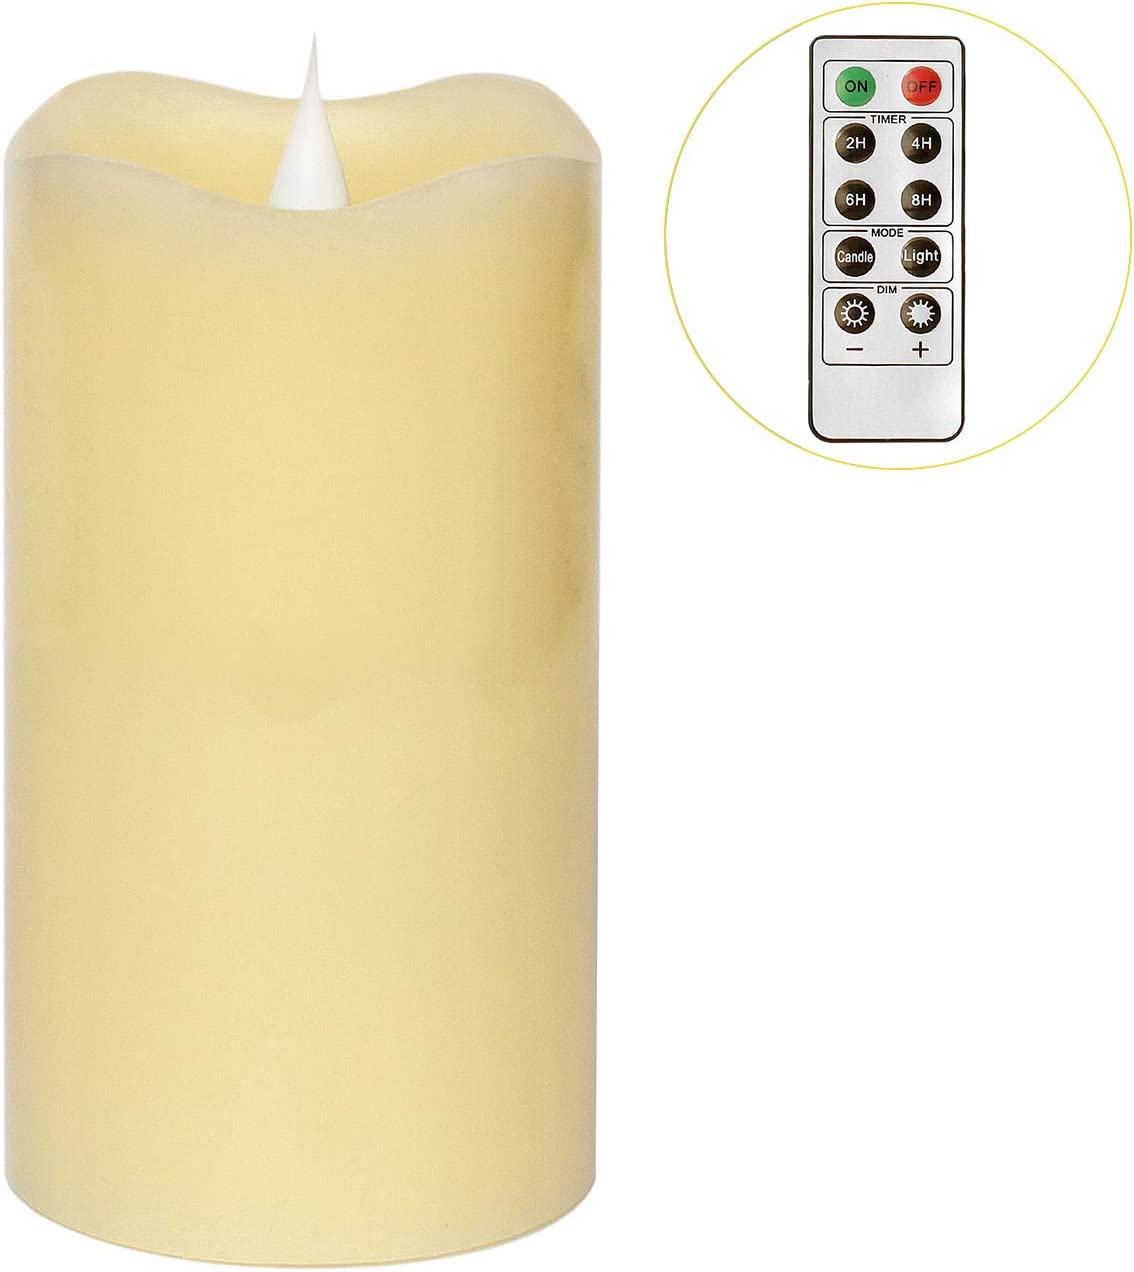 3D Moving Flame Led Candle With Timer, Pillar Flamless Candle for Christmas Decoration, 3x5 Inch, Ivory